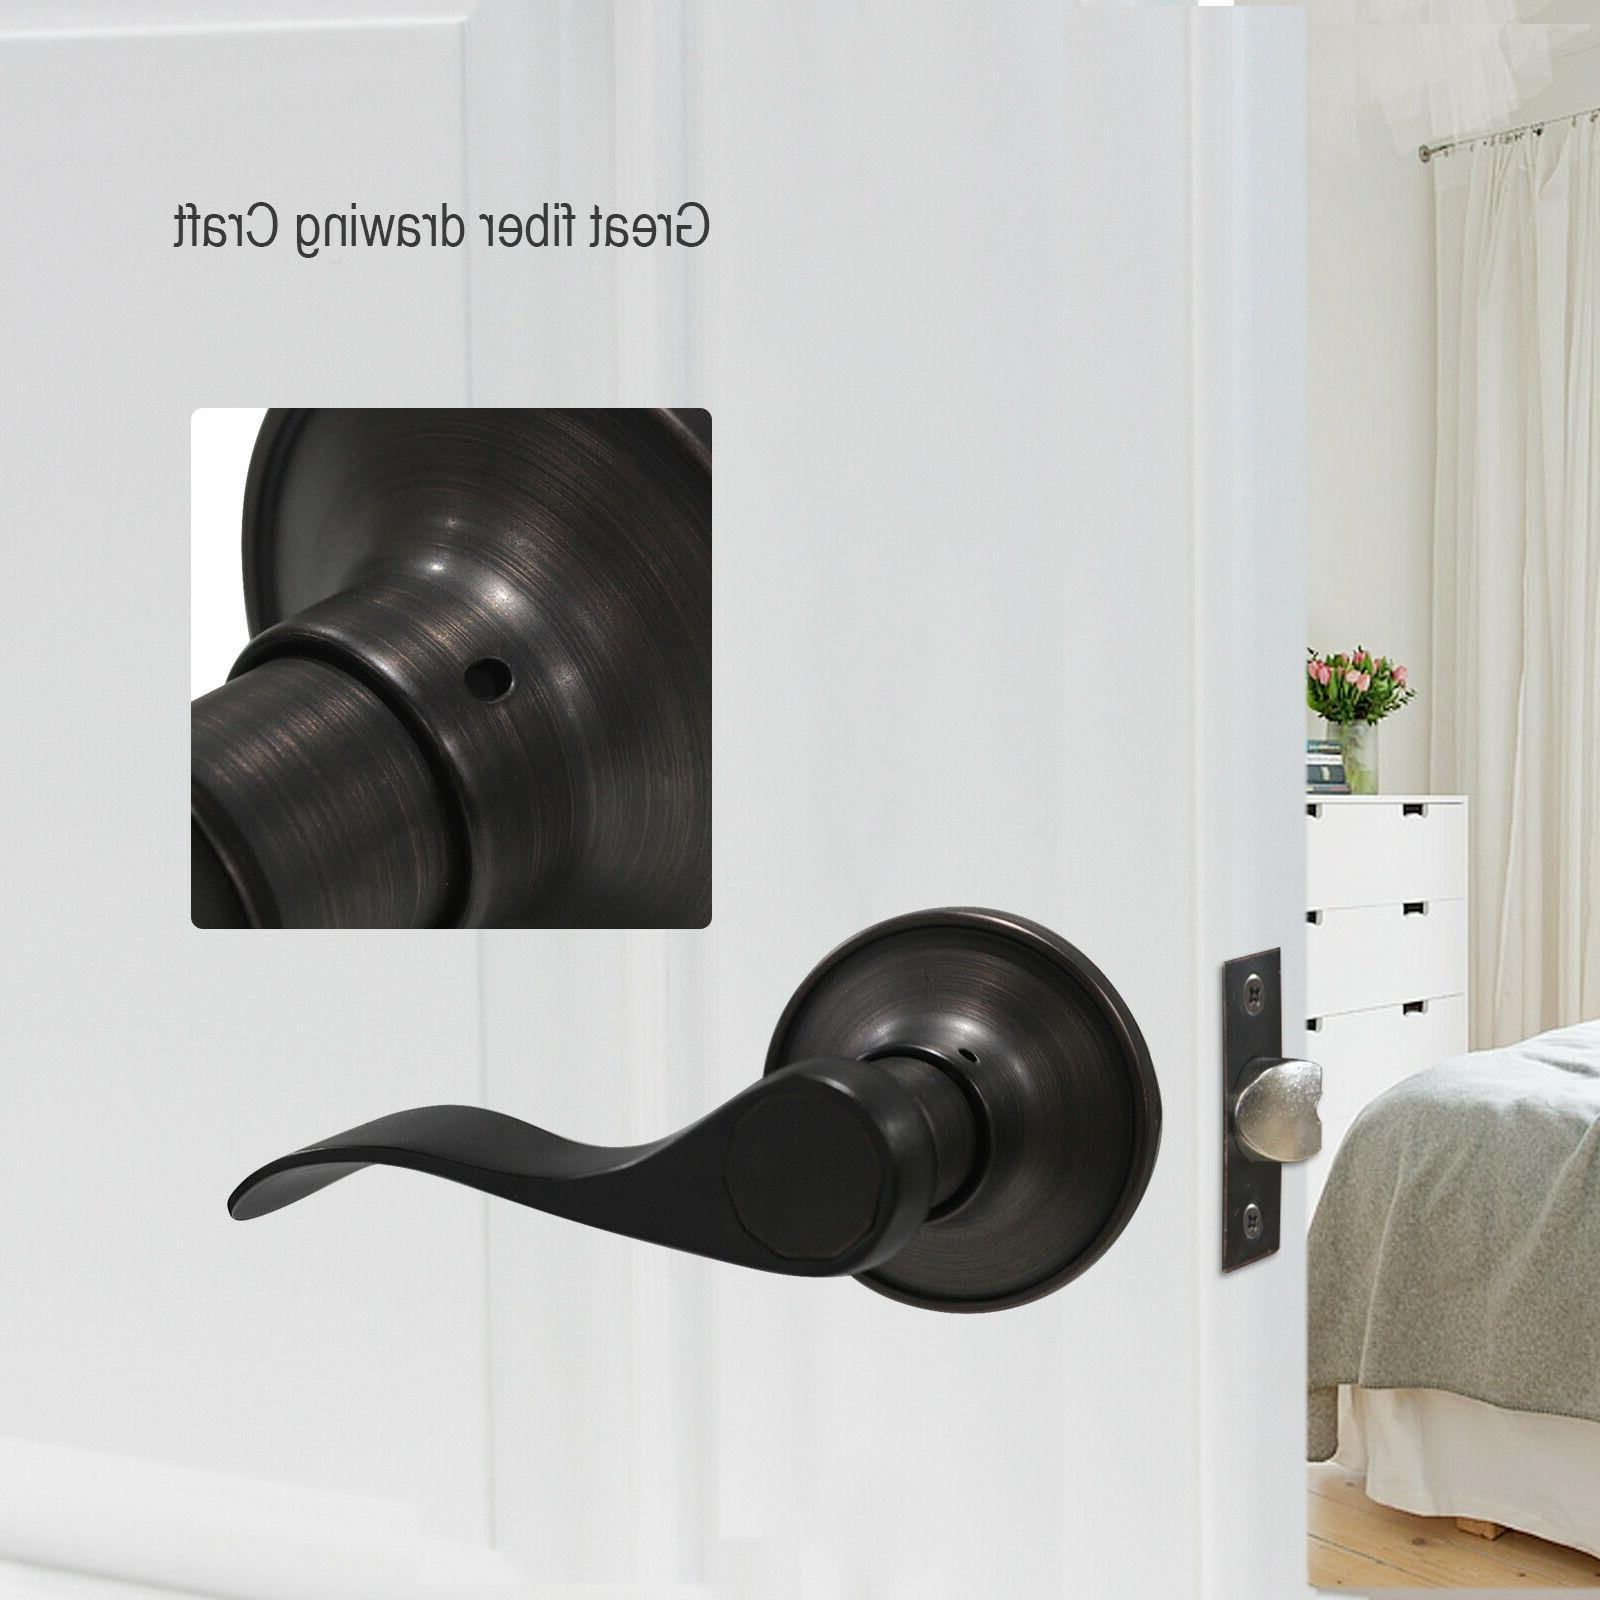 Oil Rubbed Bronze Lever Lock Door Handles Entry/Passage Privacy/Dummy Knobs